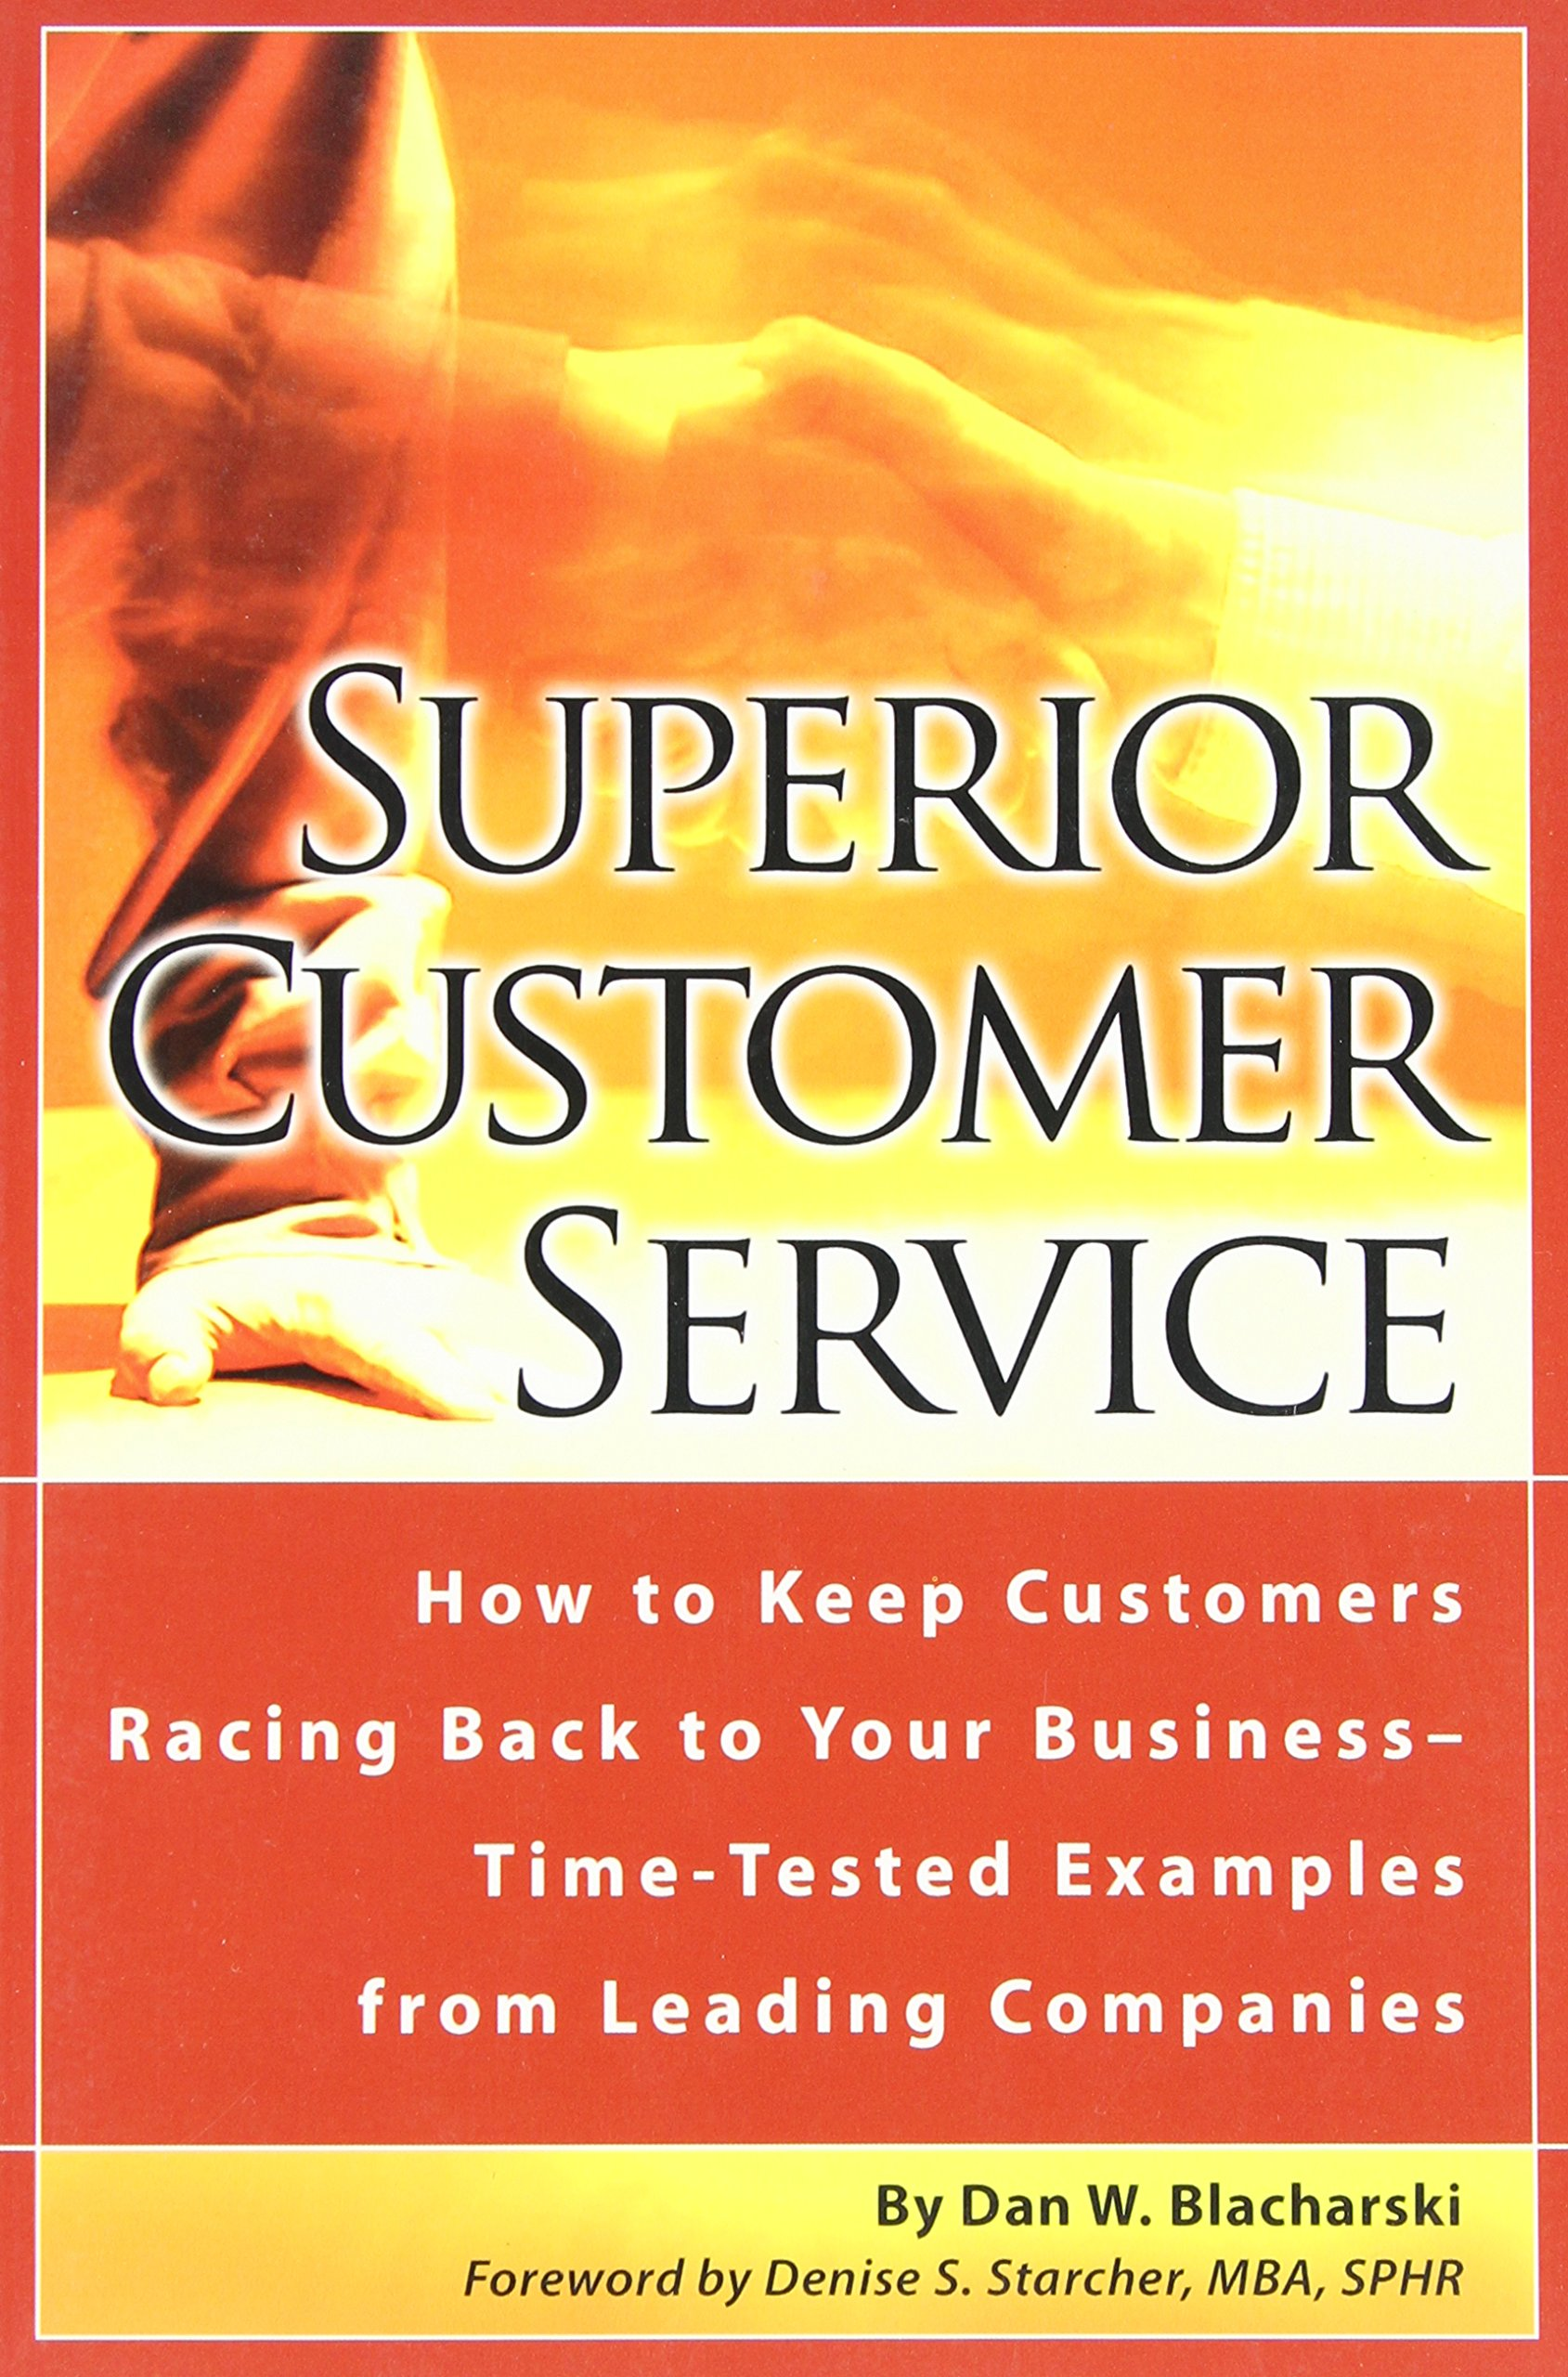 superior customer service how to keep customers racing back to your business time tested examples from leading companies dan w blacharski 9780910627528